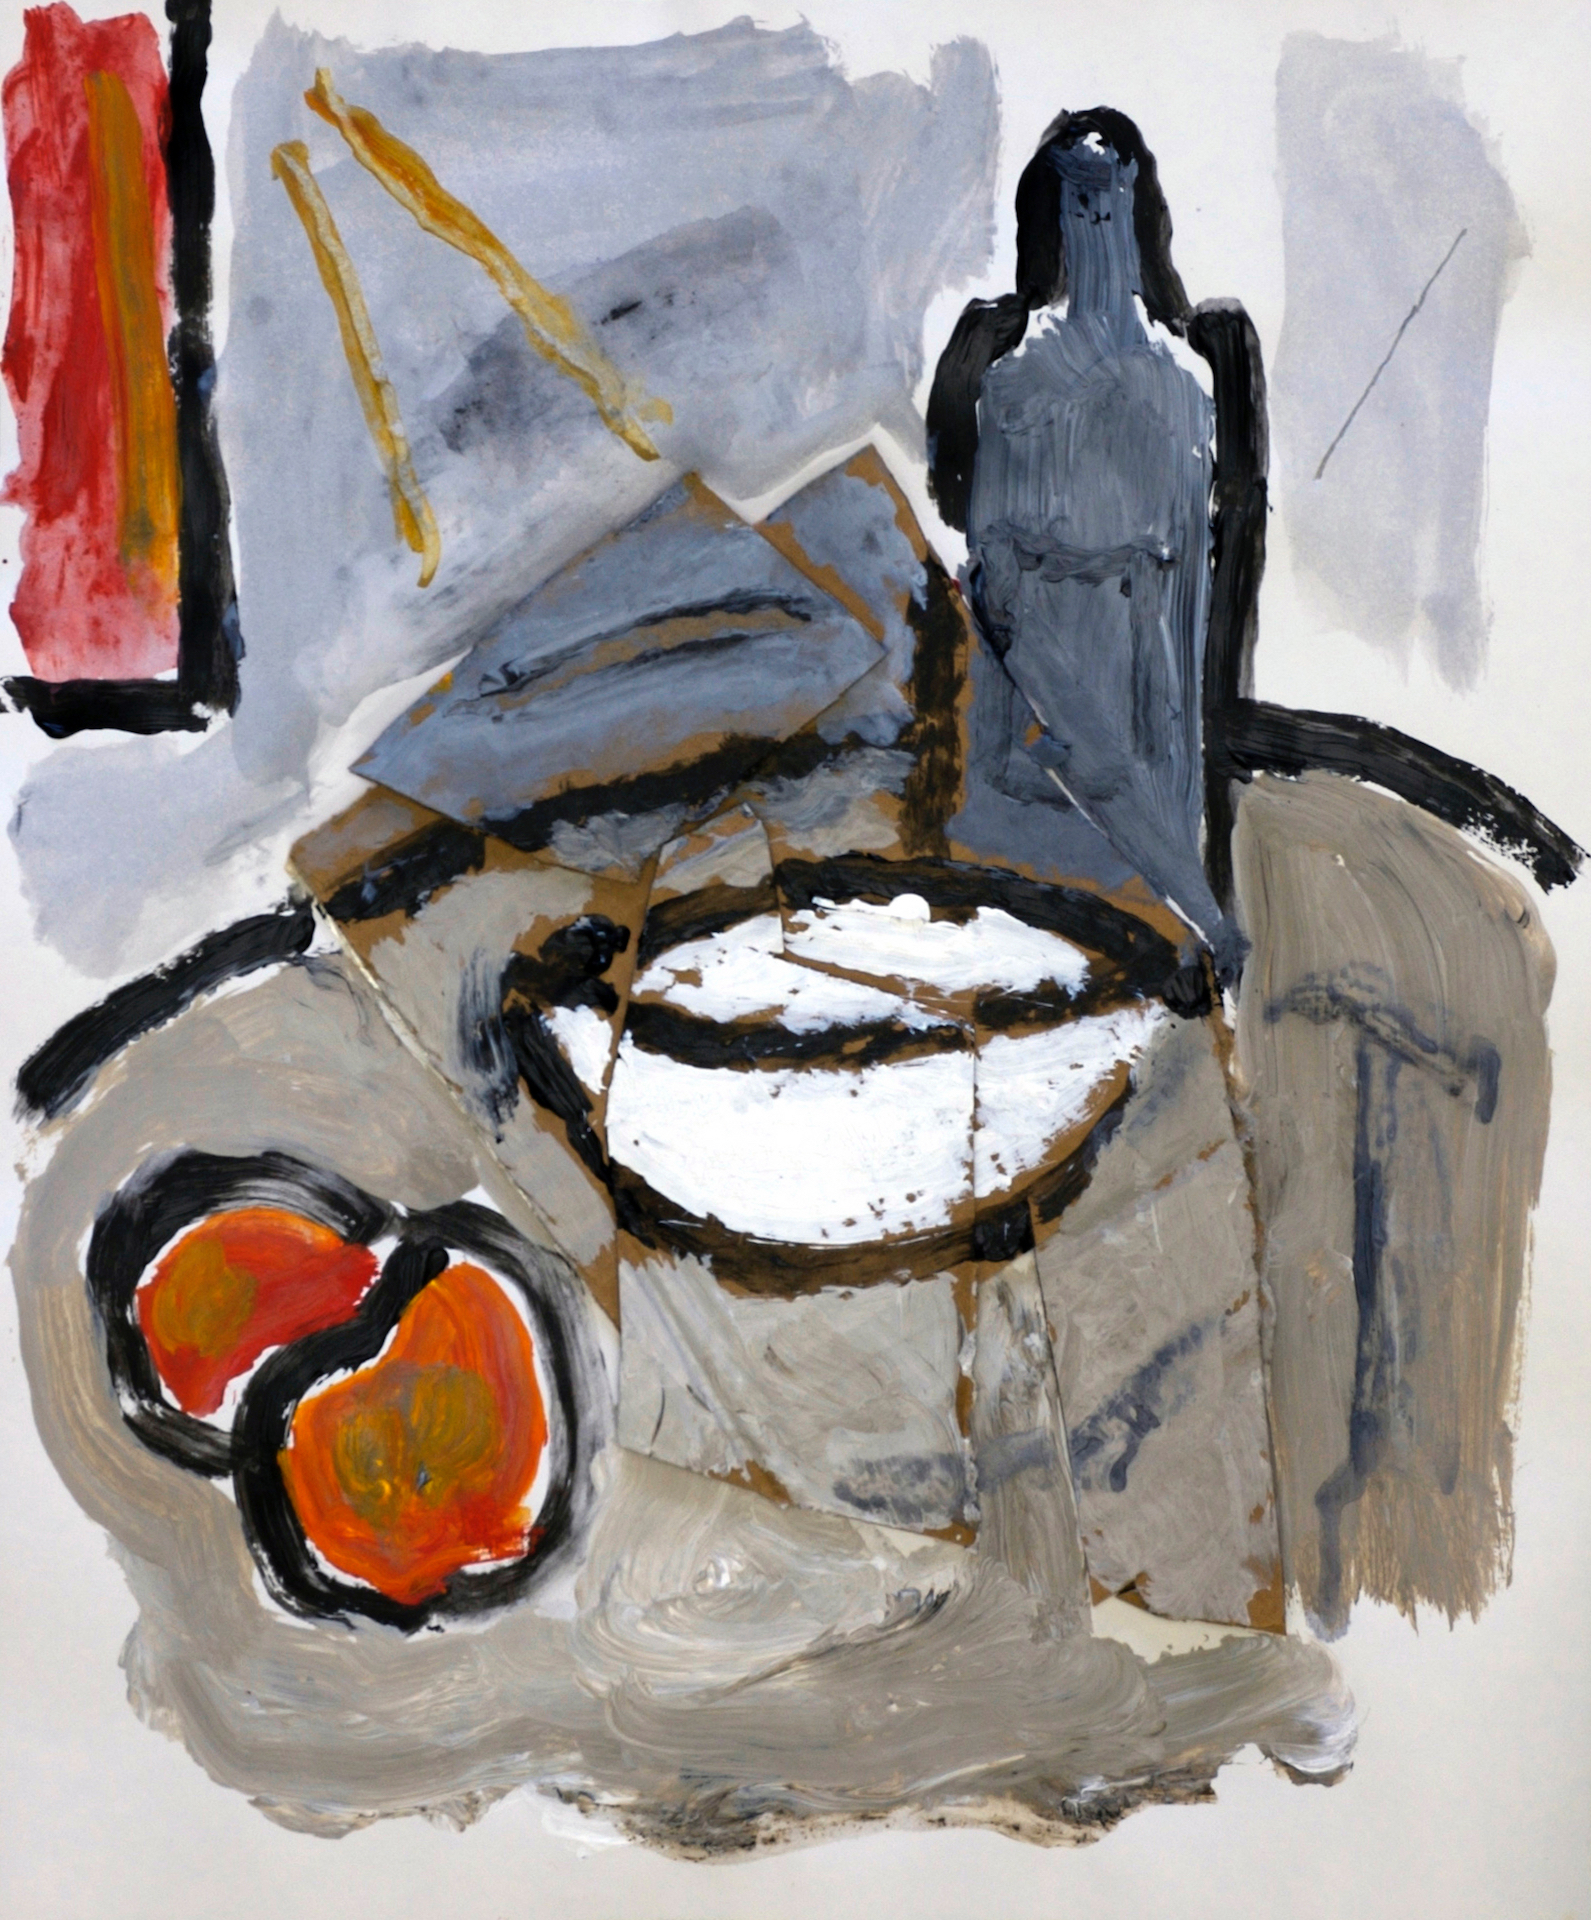 Still Life with White Bowl (after Cézanne)